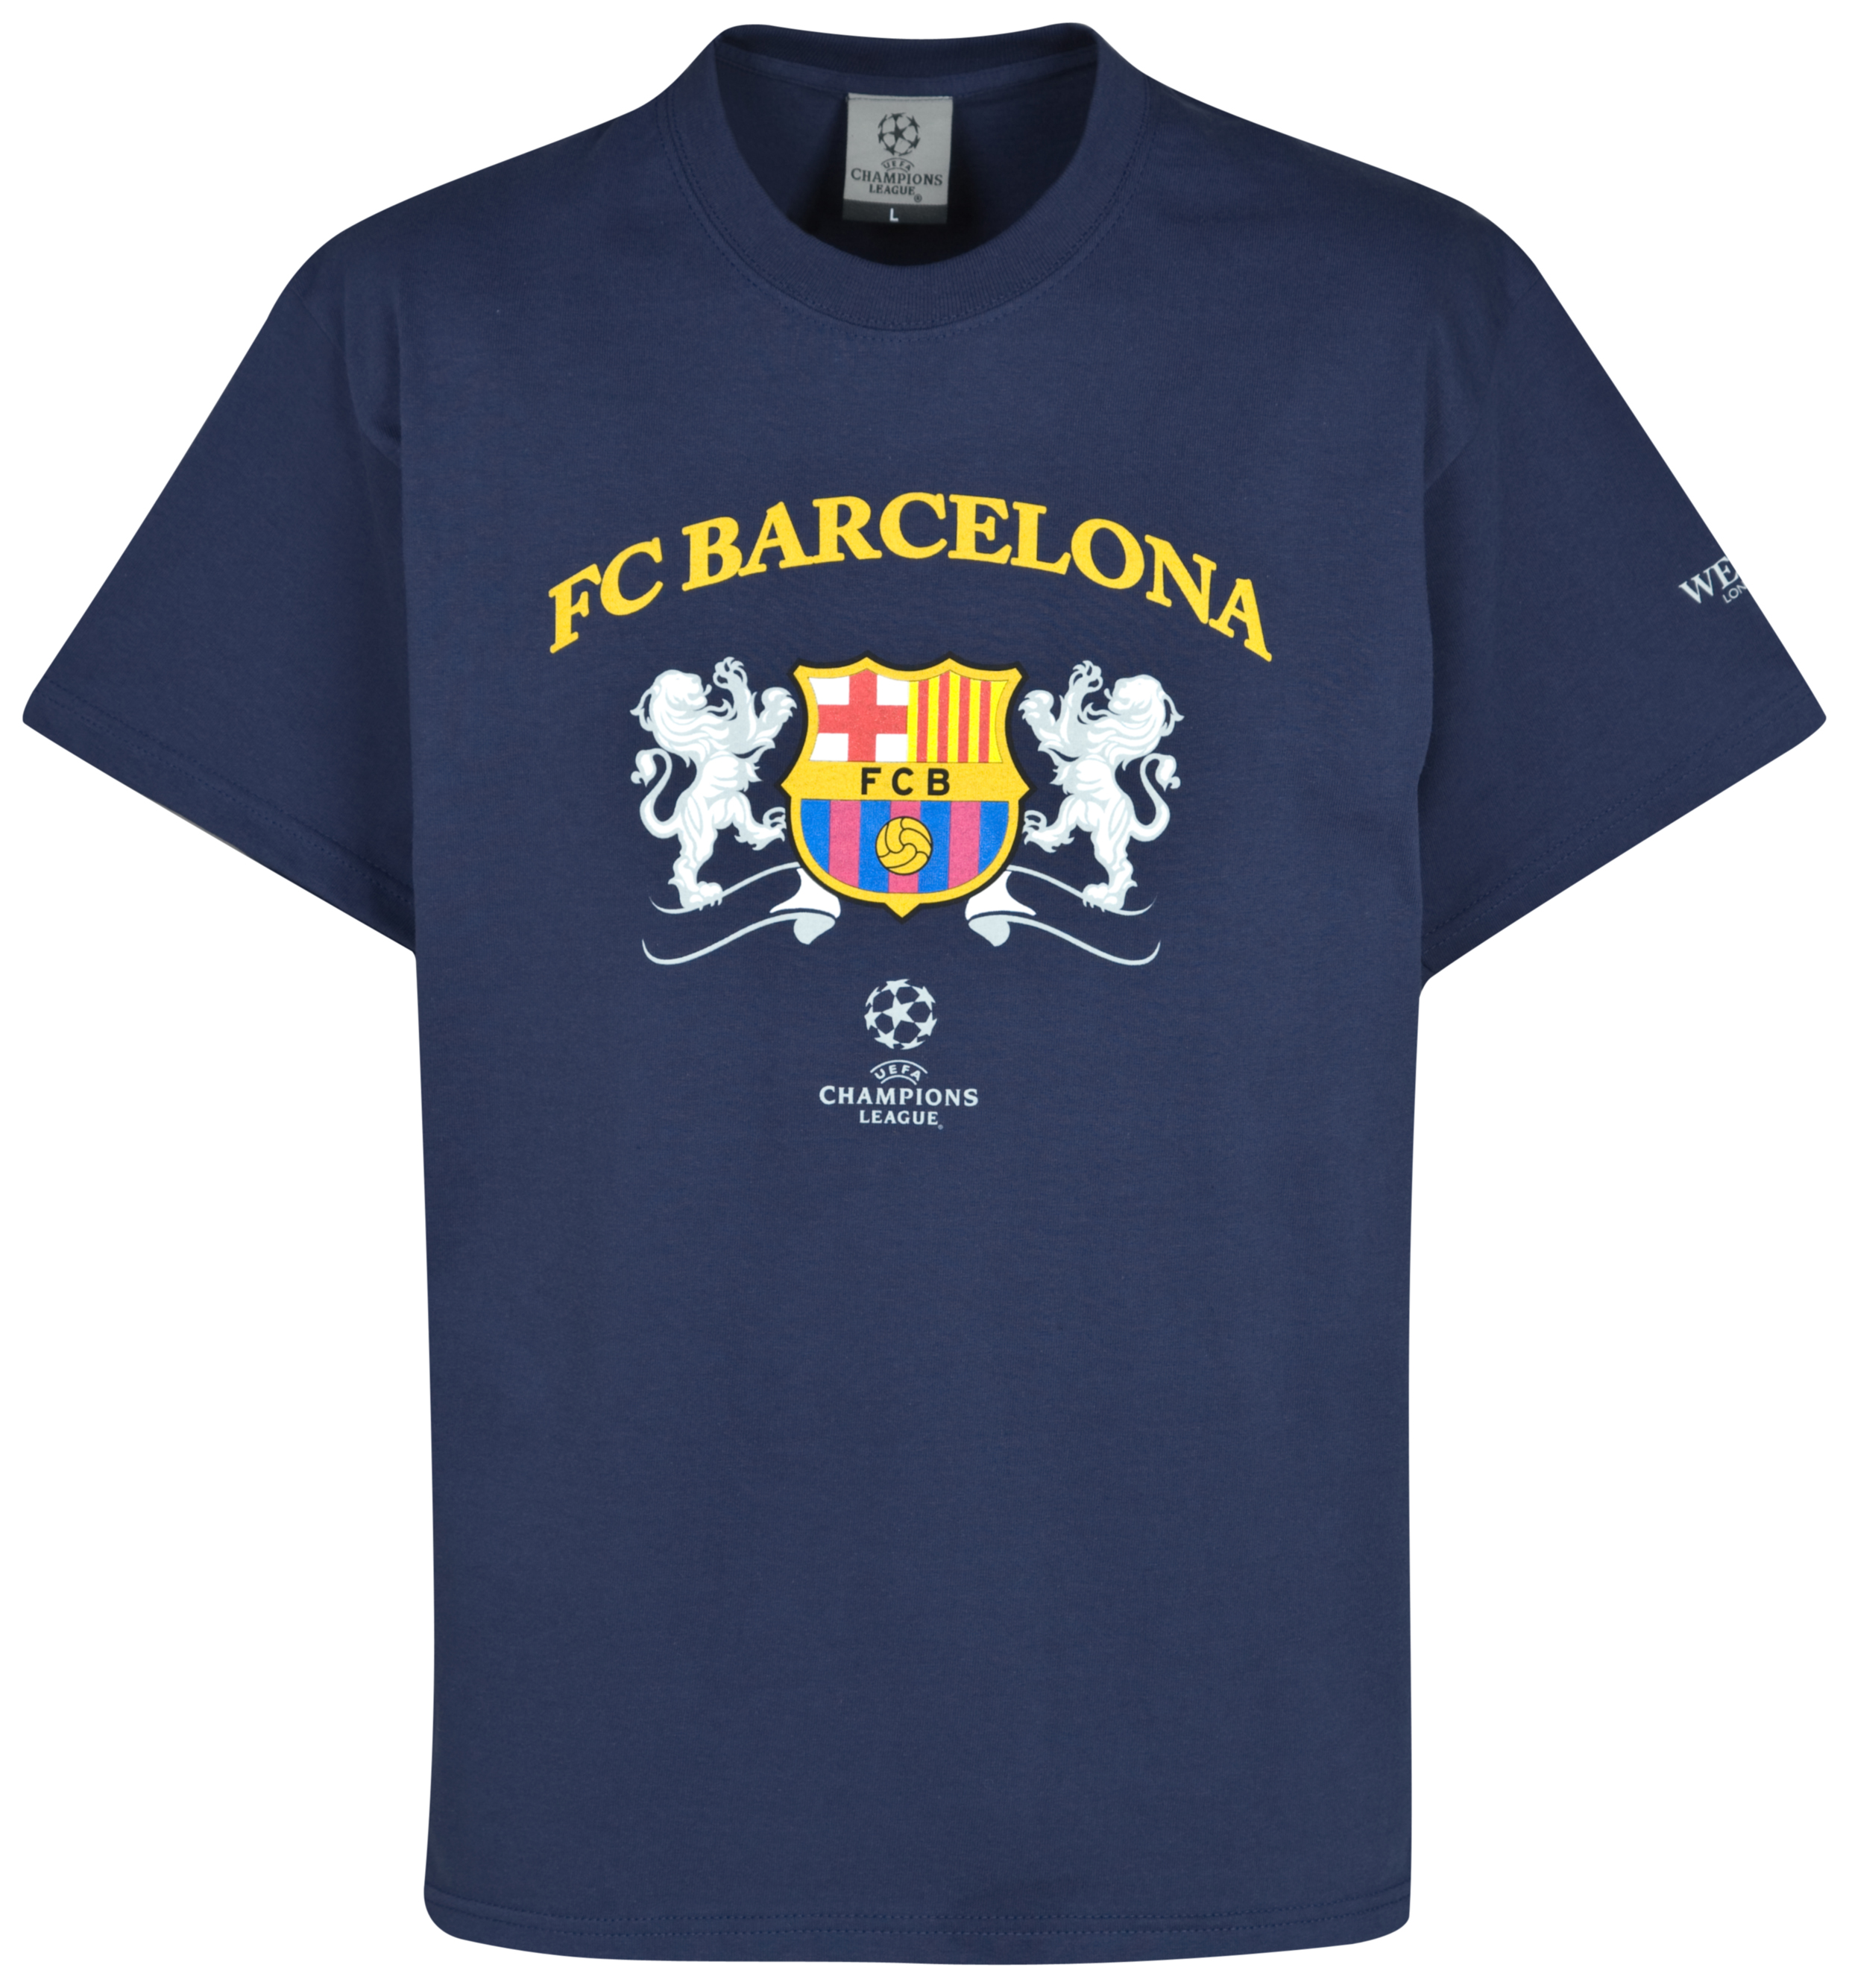 UEFA Champions League 2011 Final T-Shirt - Navy